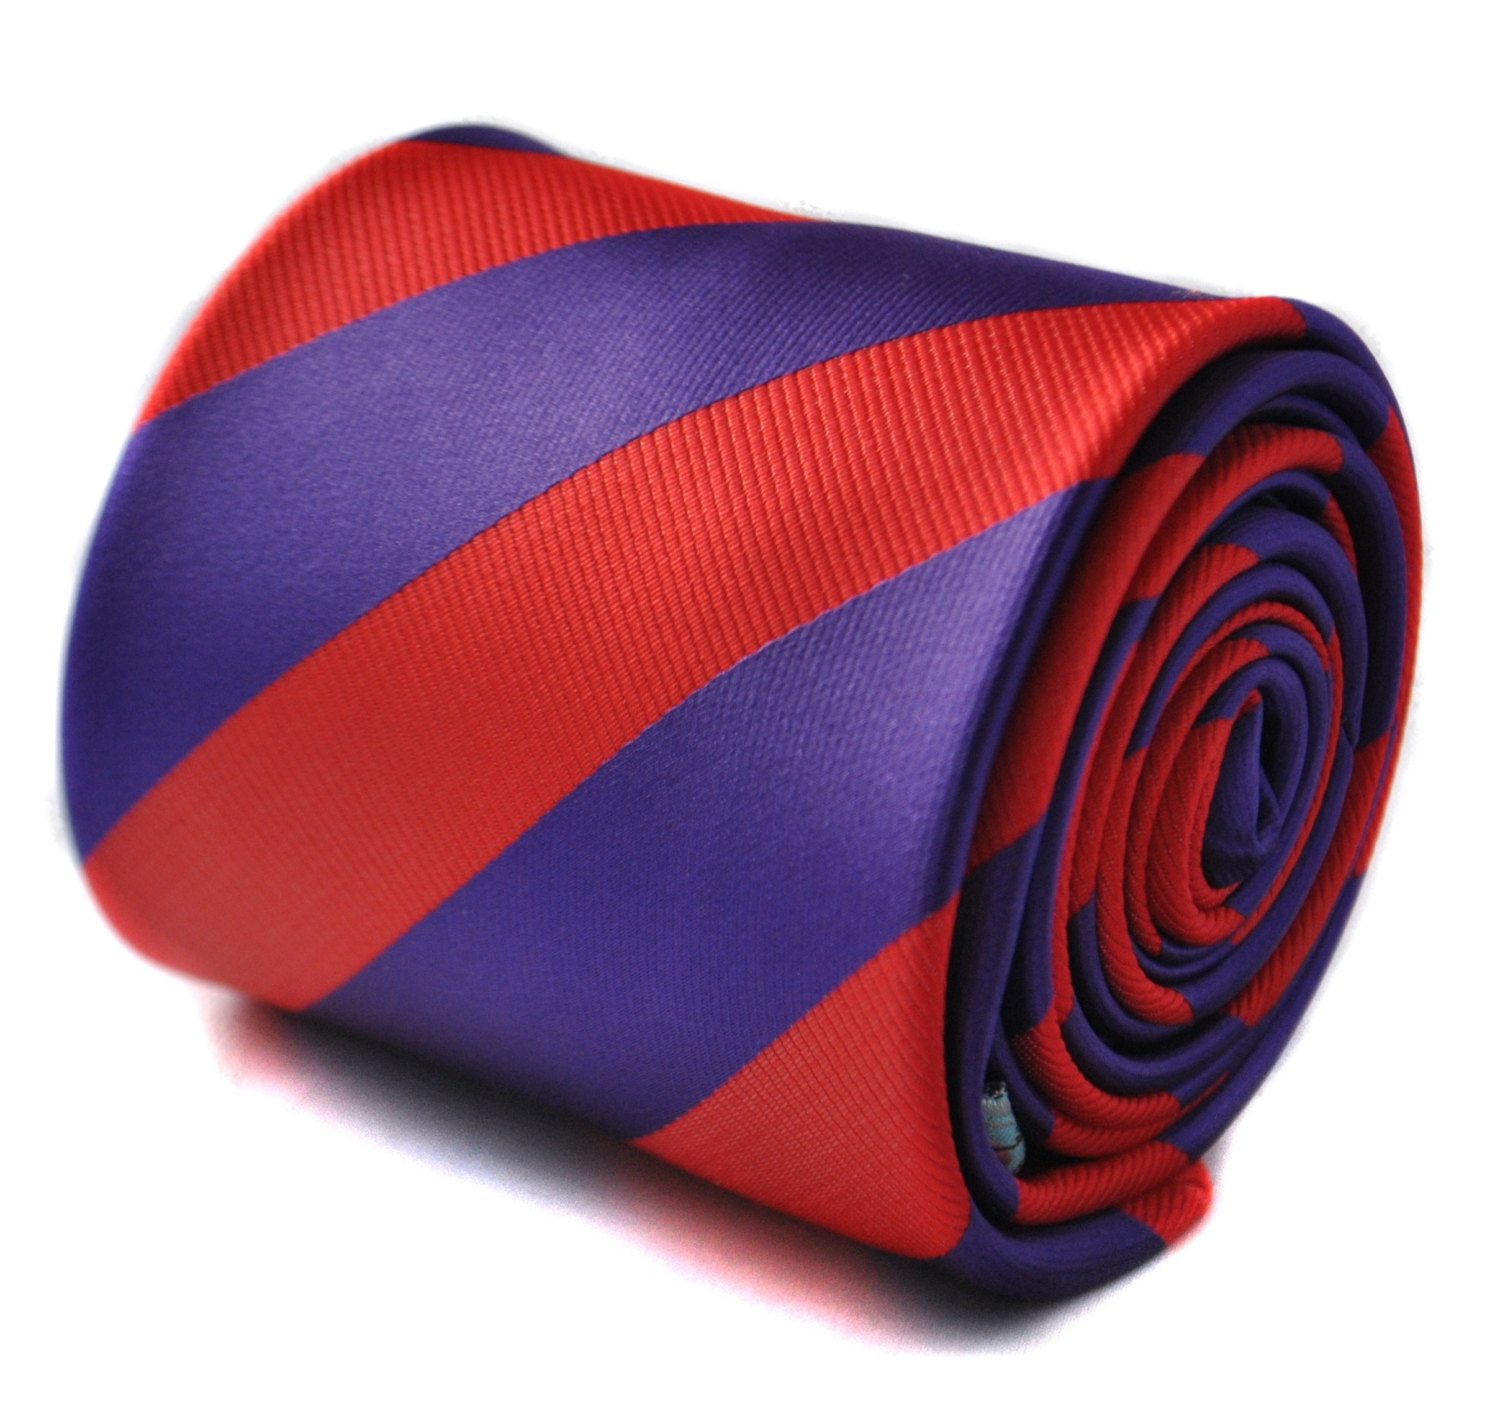 purple and red barber striped tie with floral design to the rear by Frederick Th